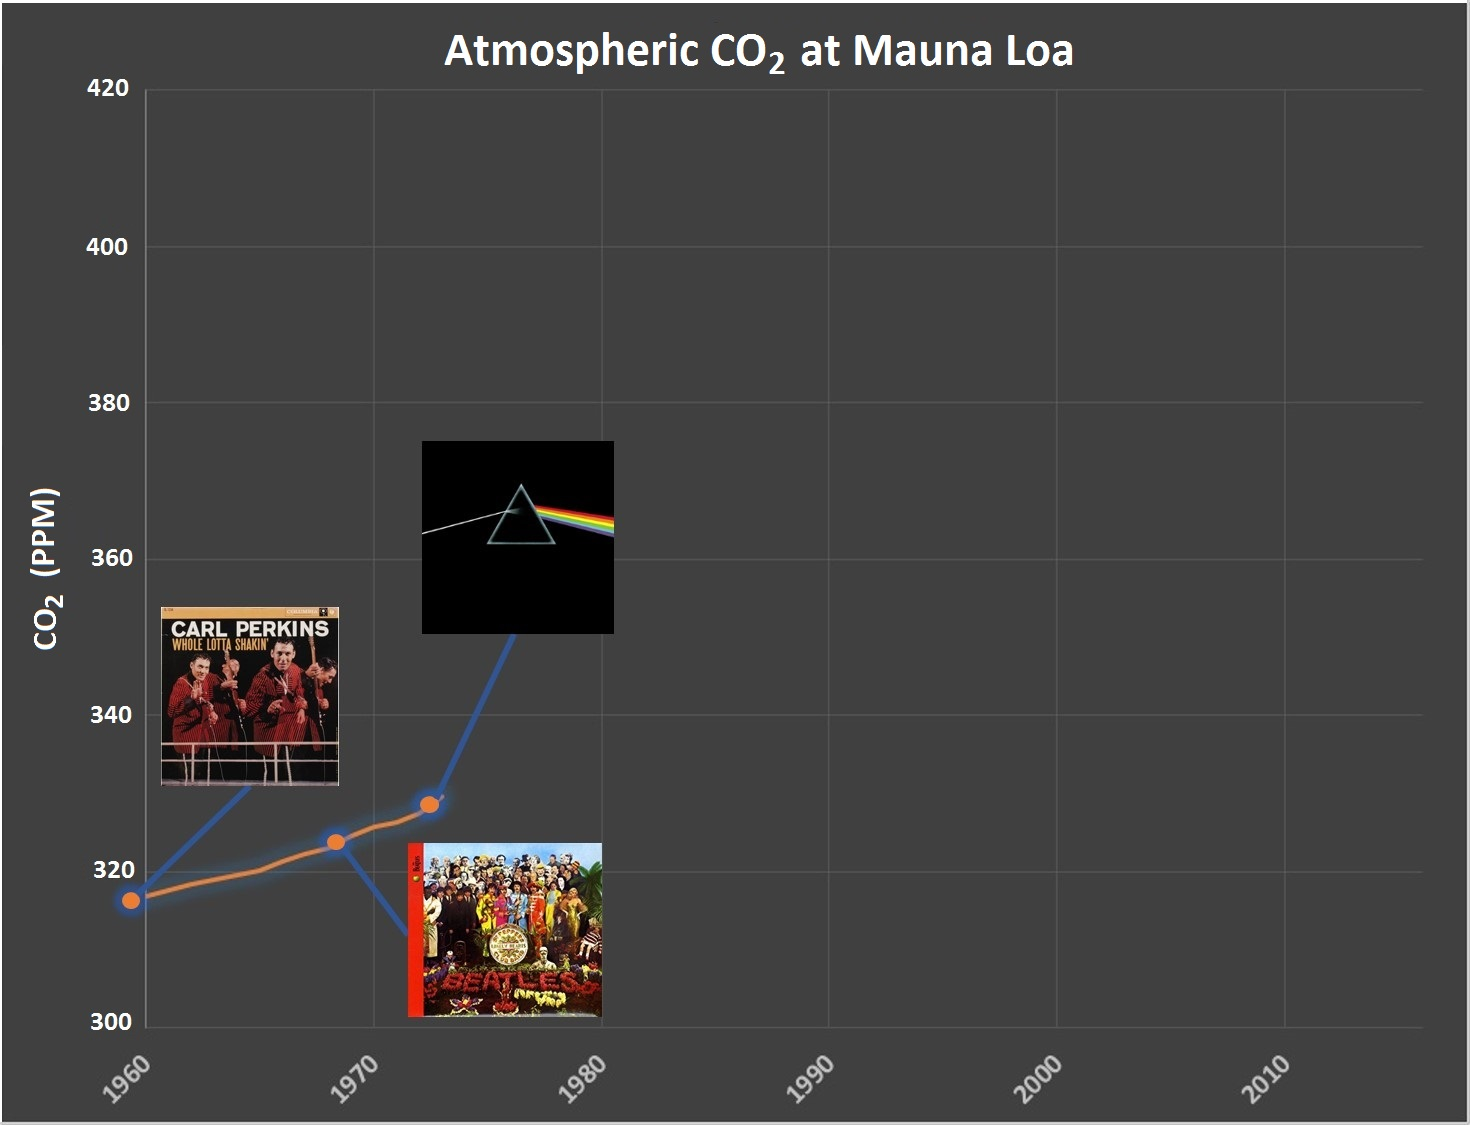 Year: 1973 CO2: 330 ppm (+8 ppm over 6 years)